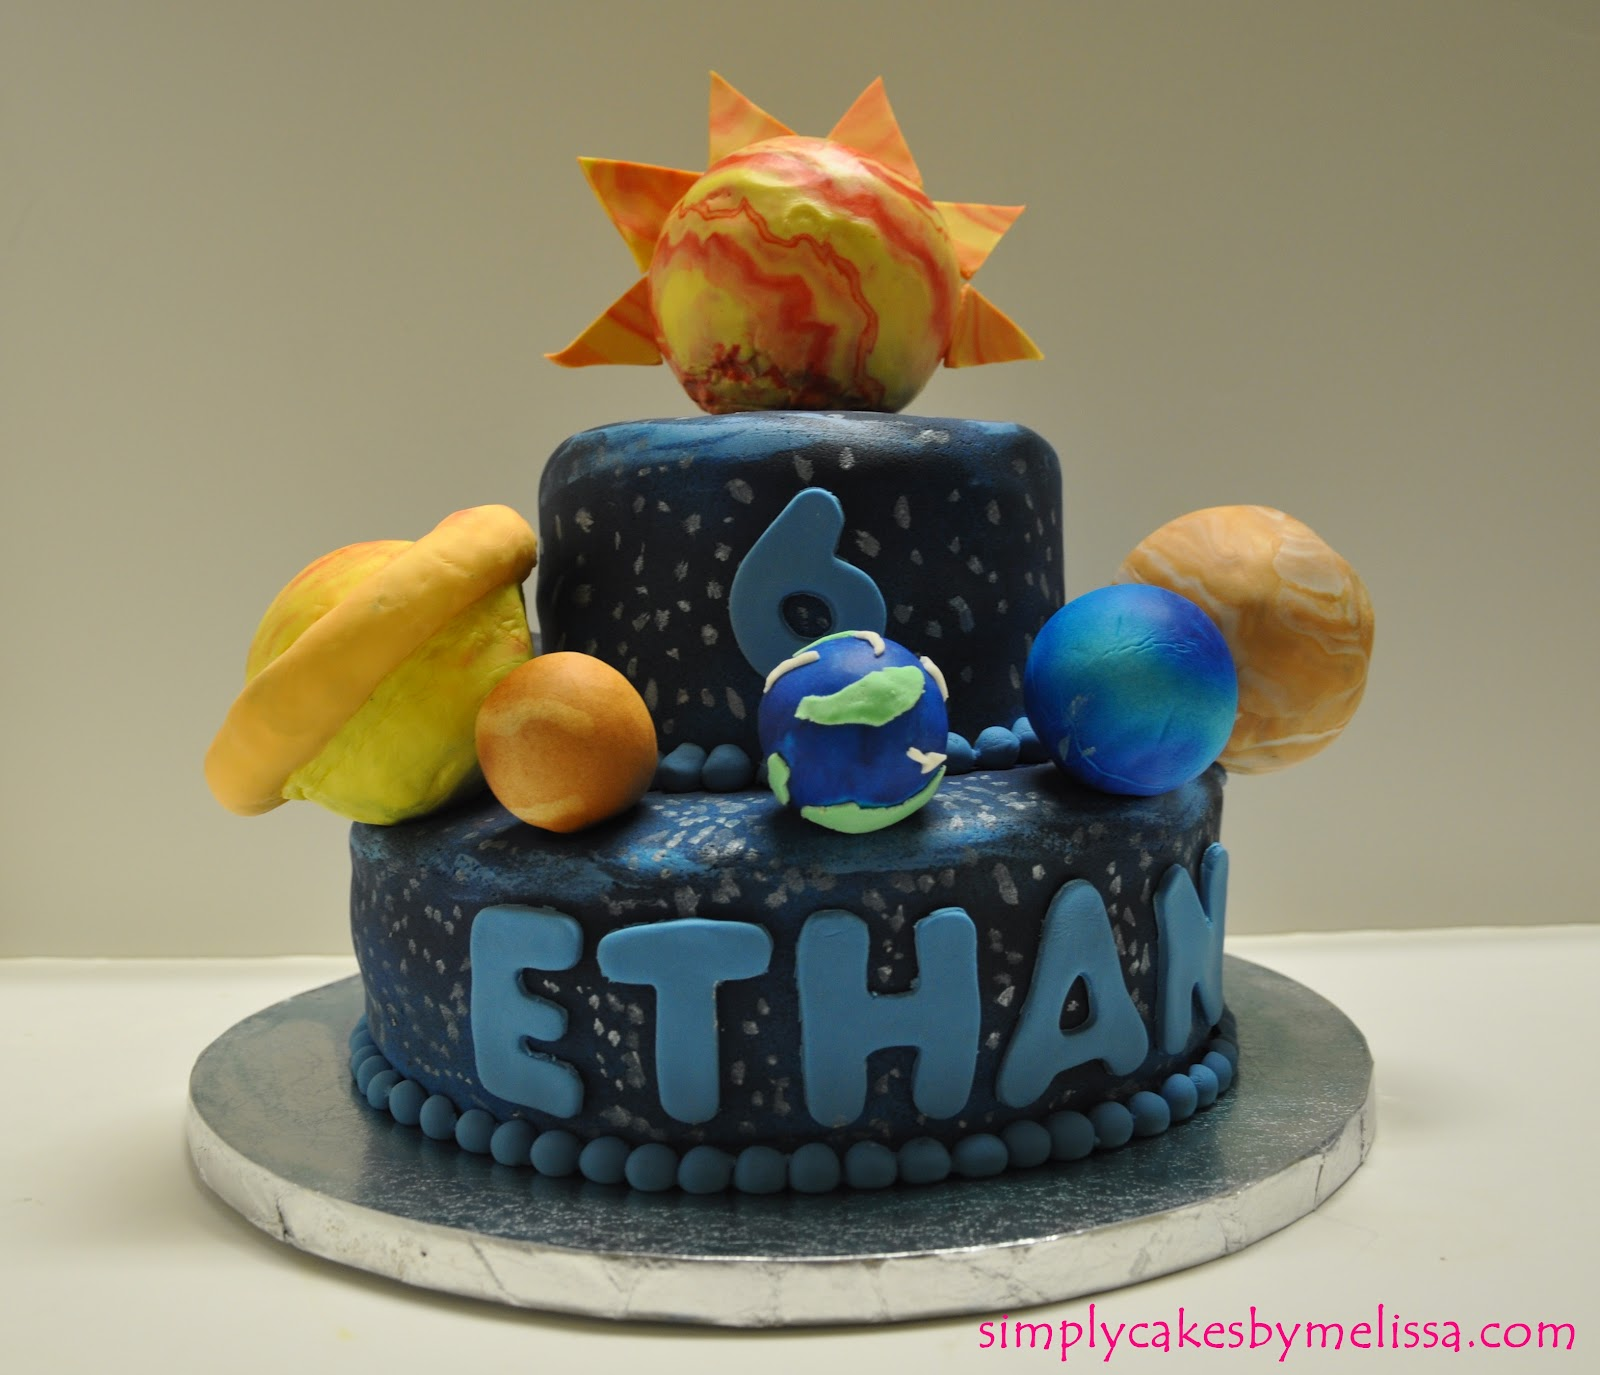 solar system cake toppers - photo #19